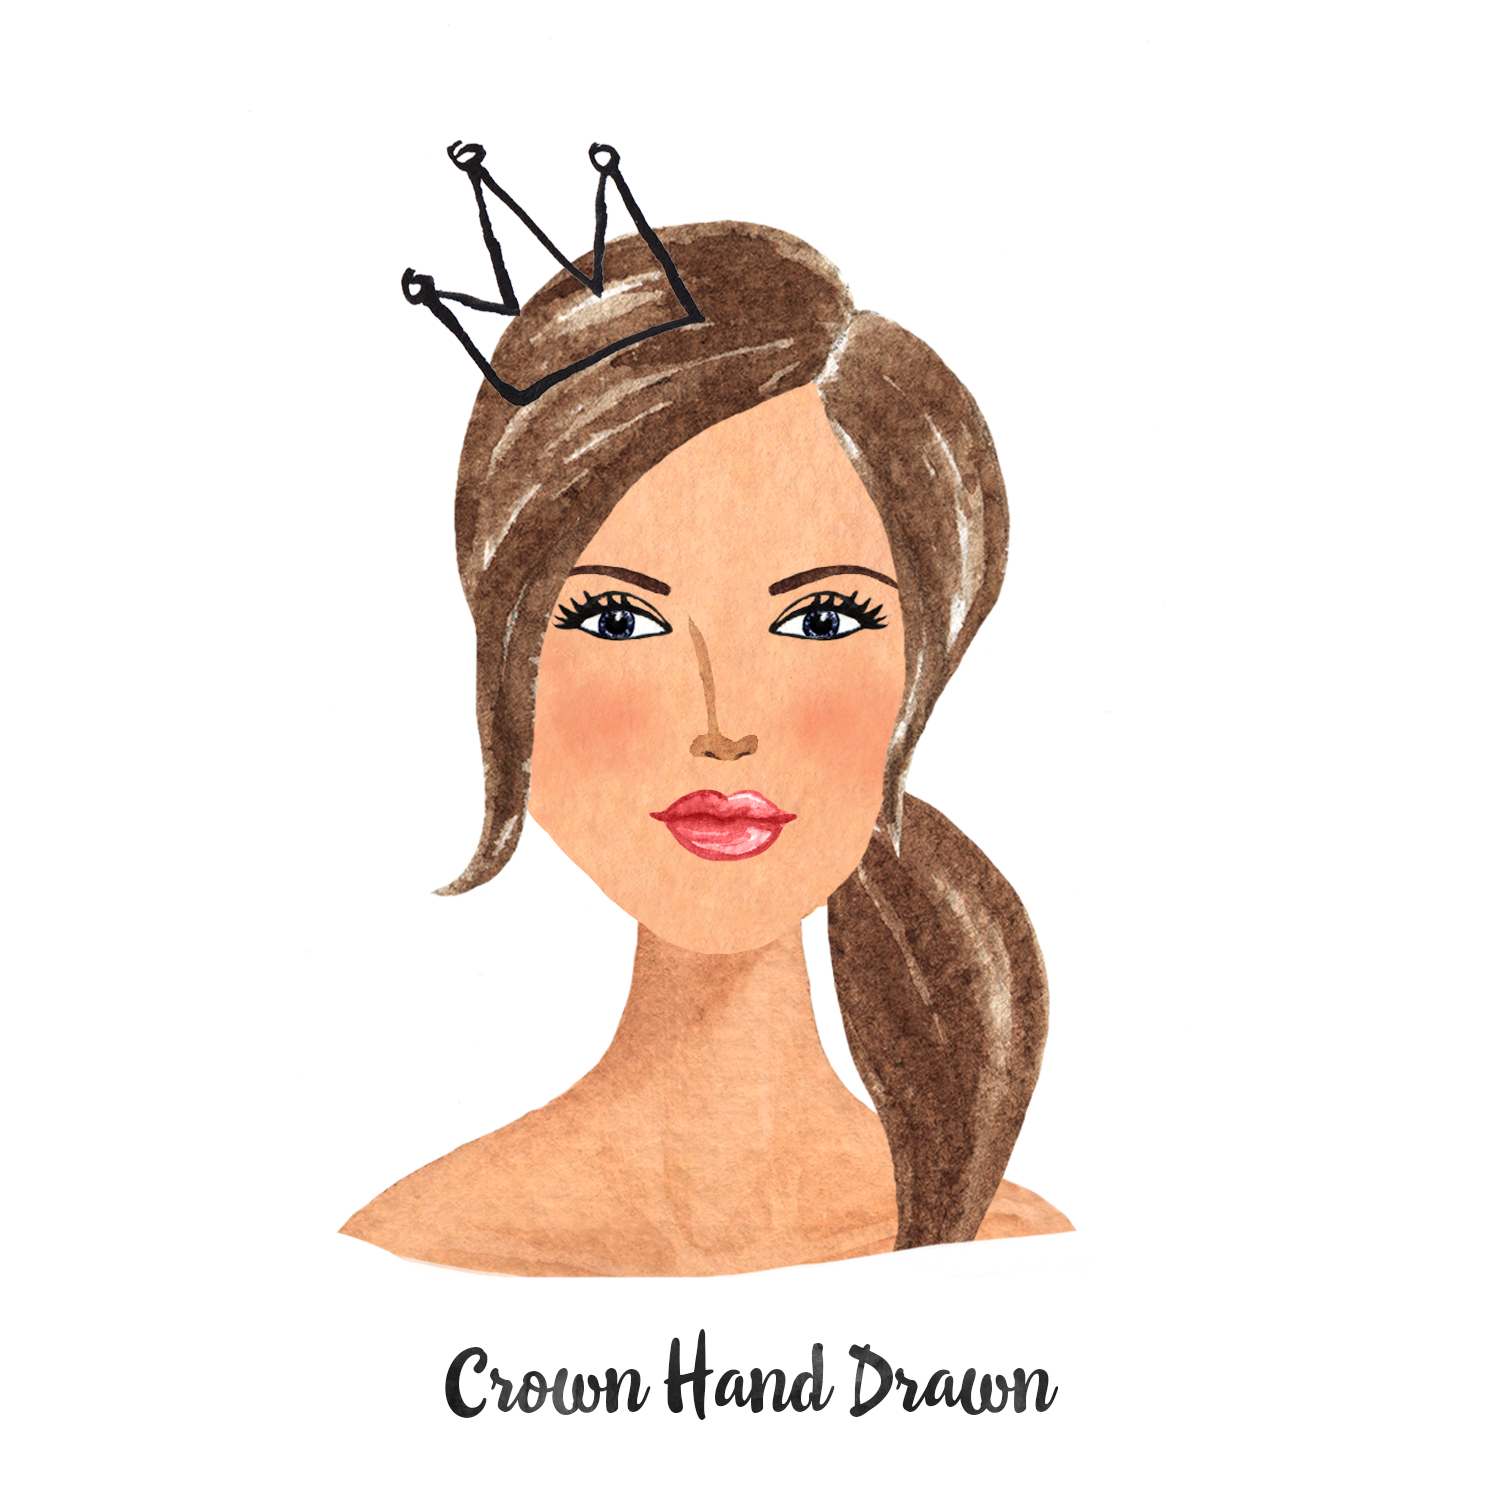 Crown Hand Drawn.jpg